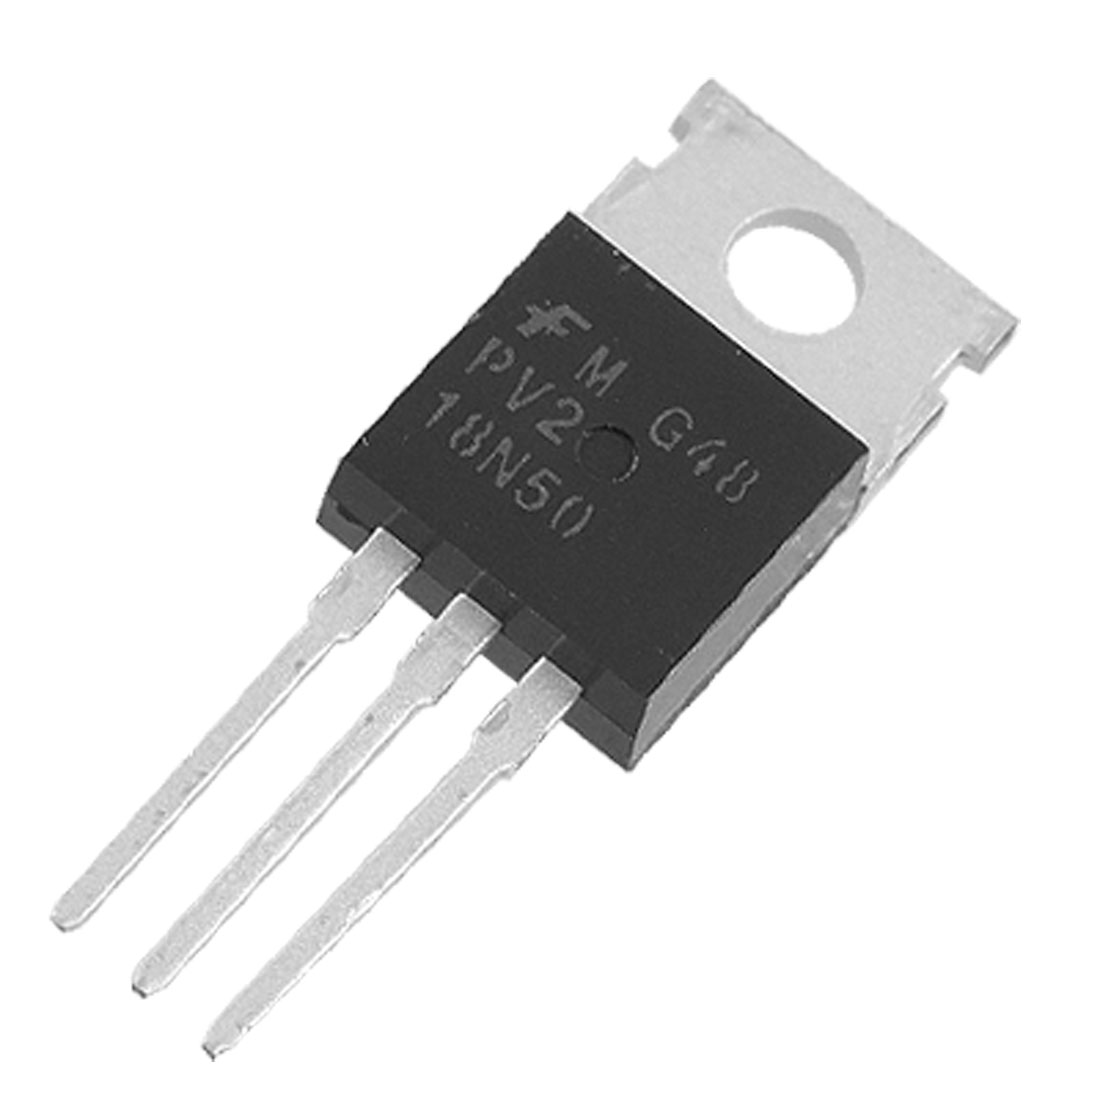 3 Pcs FQP18N50V2 18A 500V TO-220 Package N-Channel MOSFET